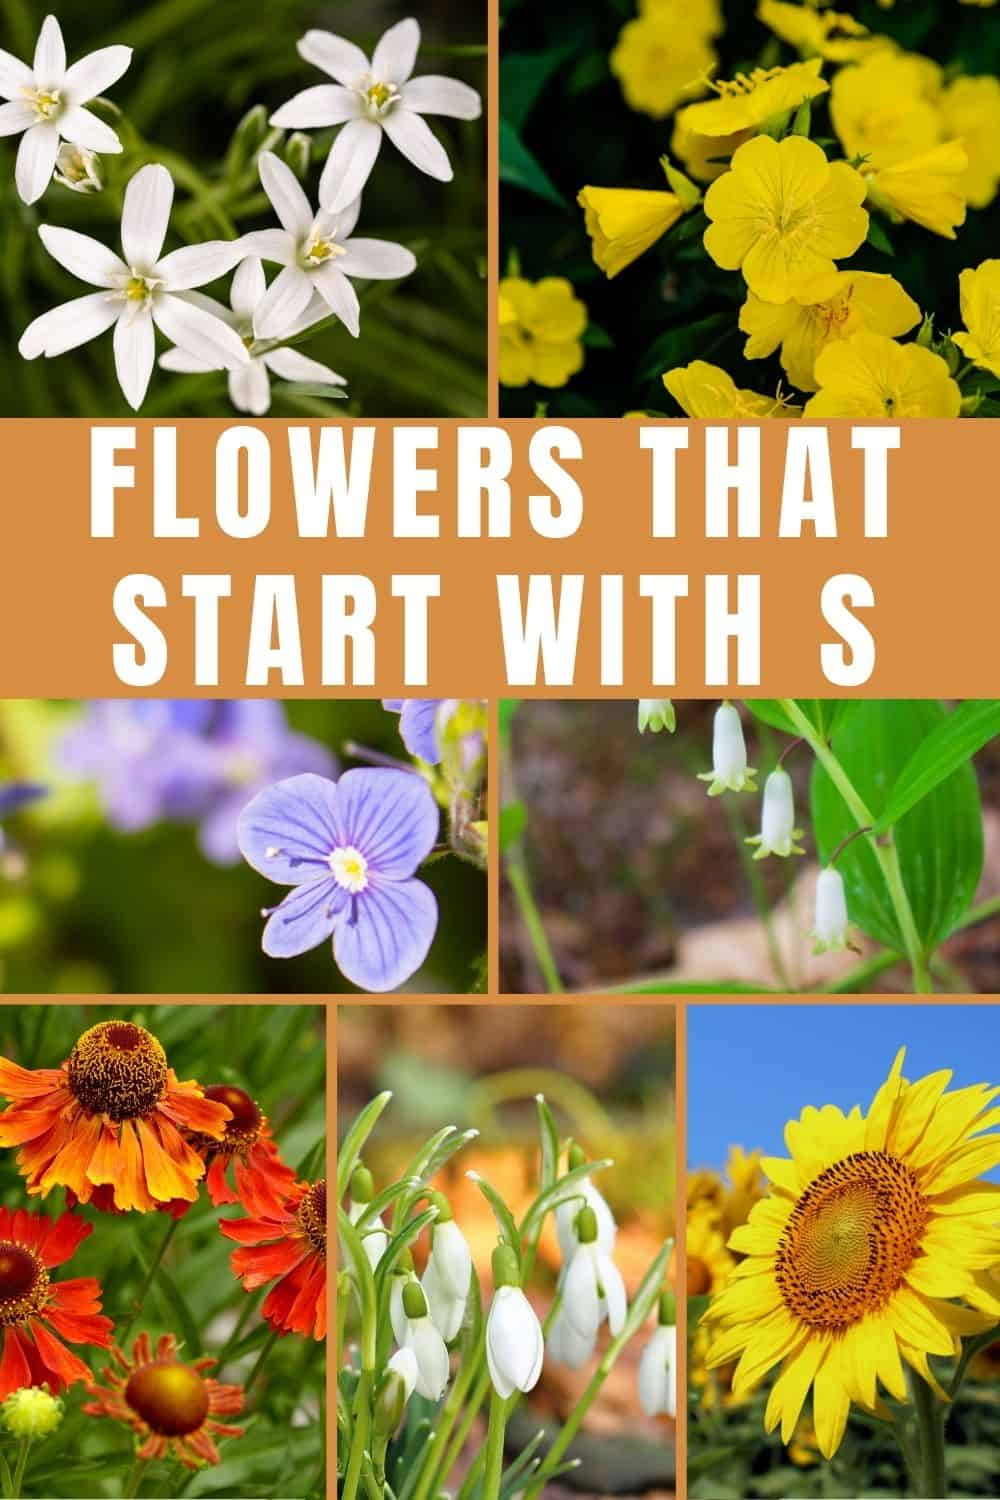 Flowers that start with S